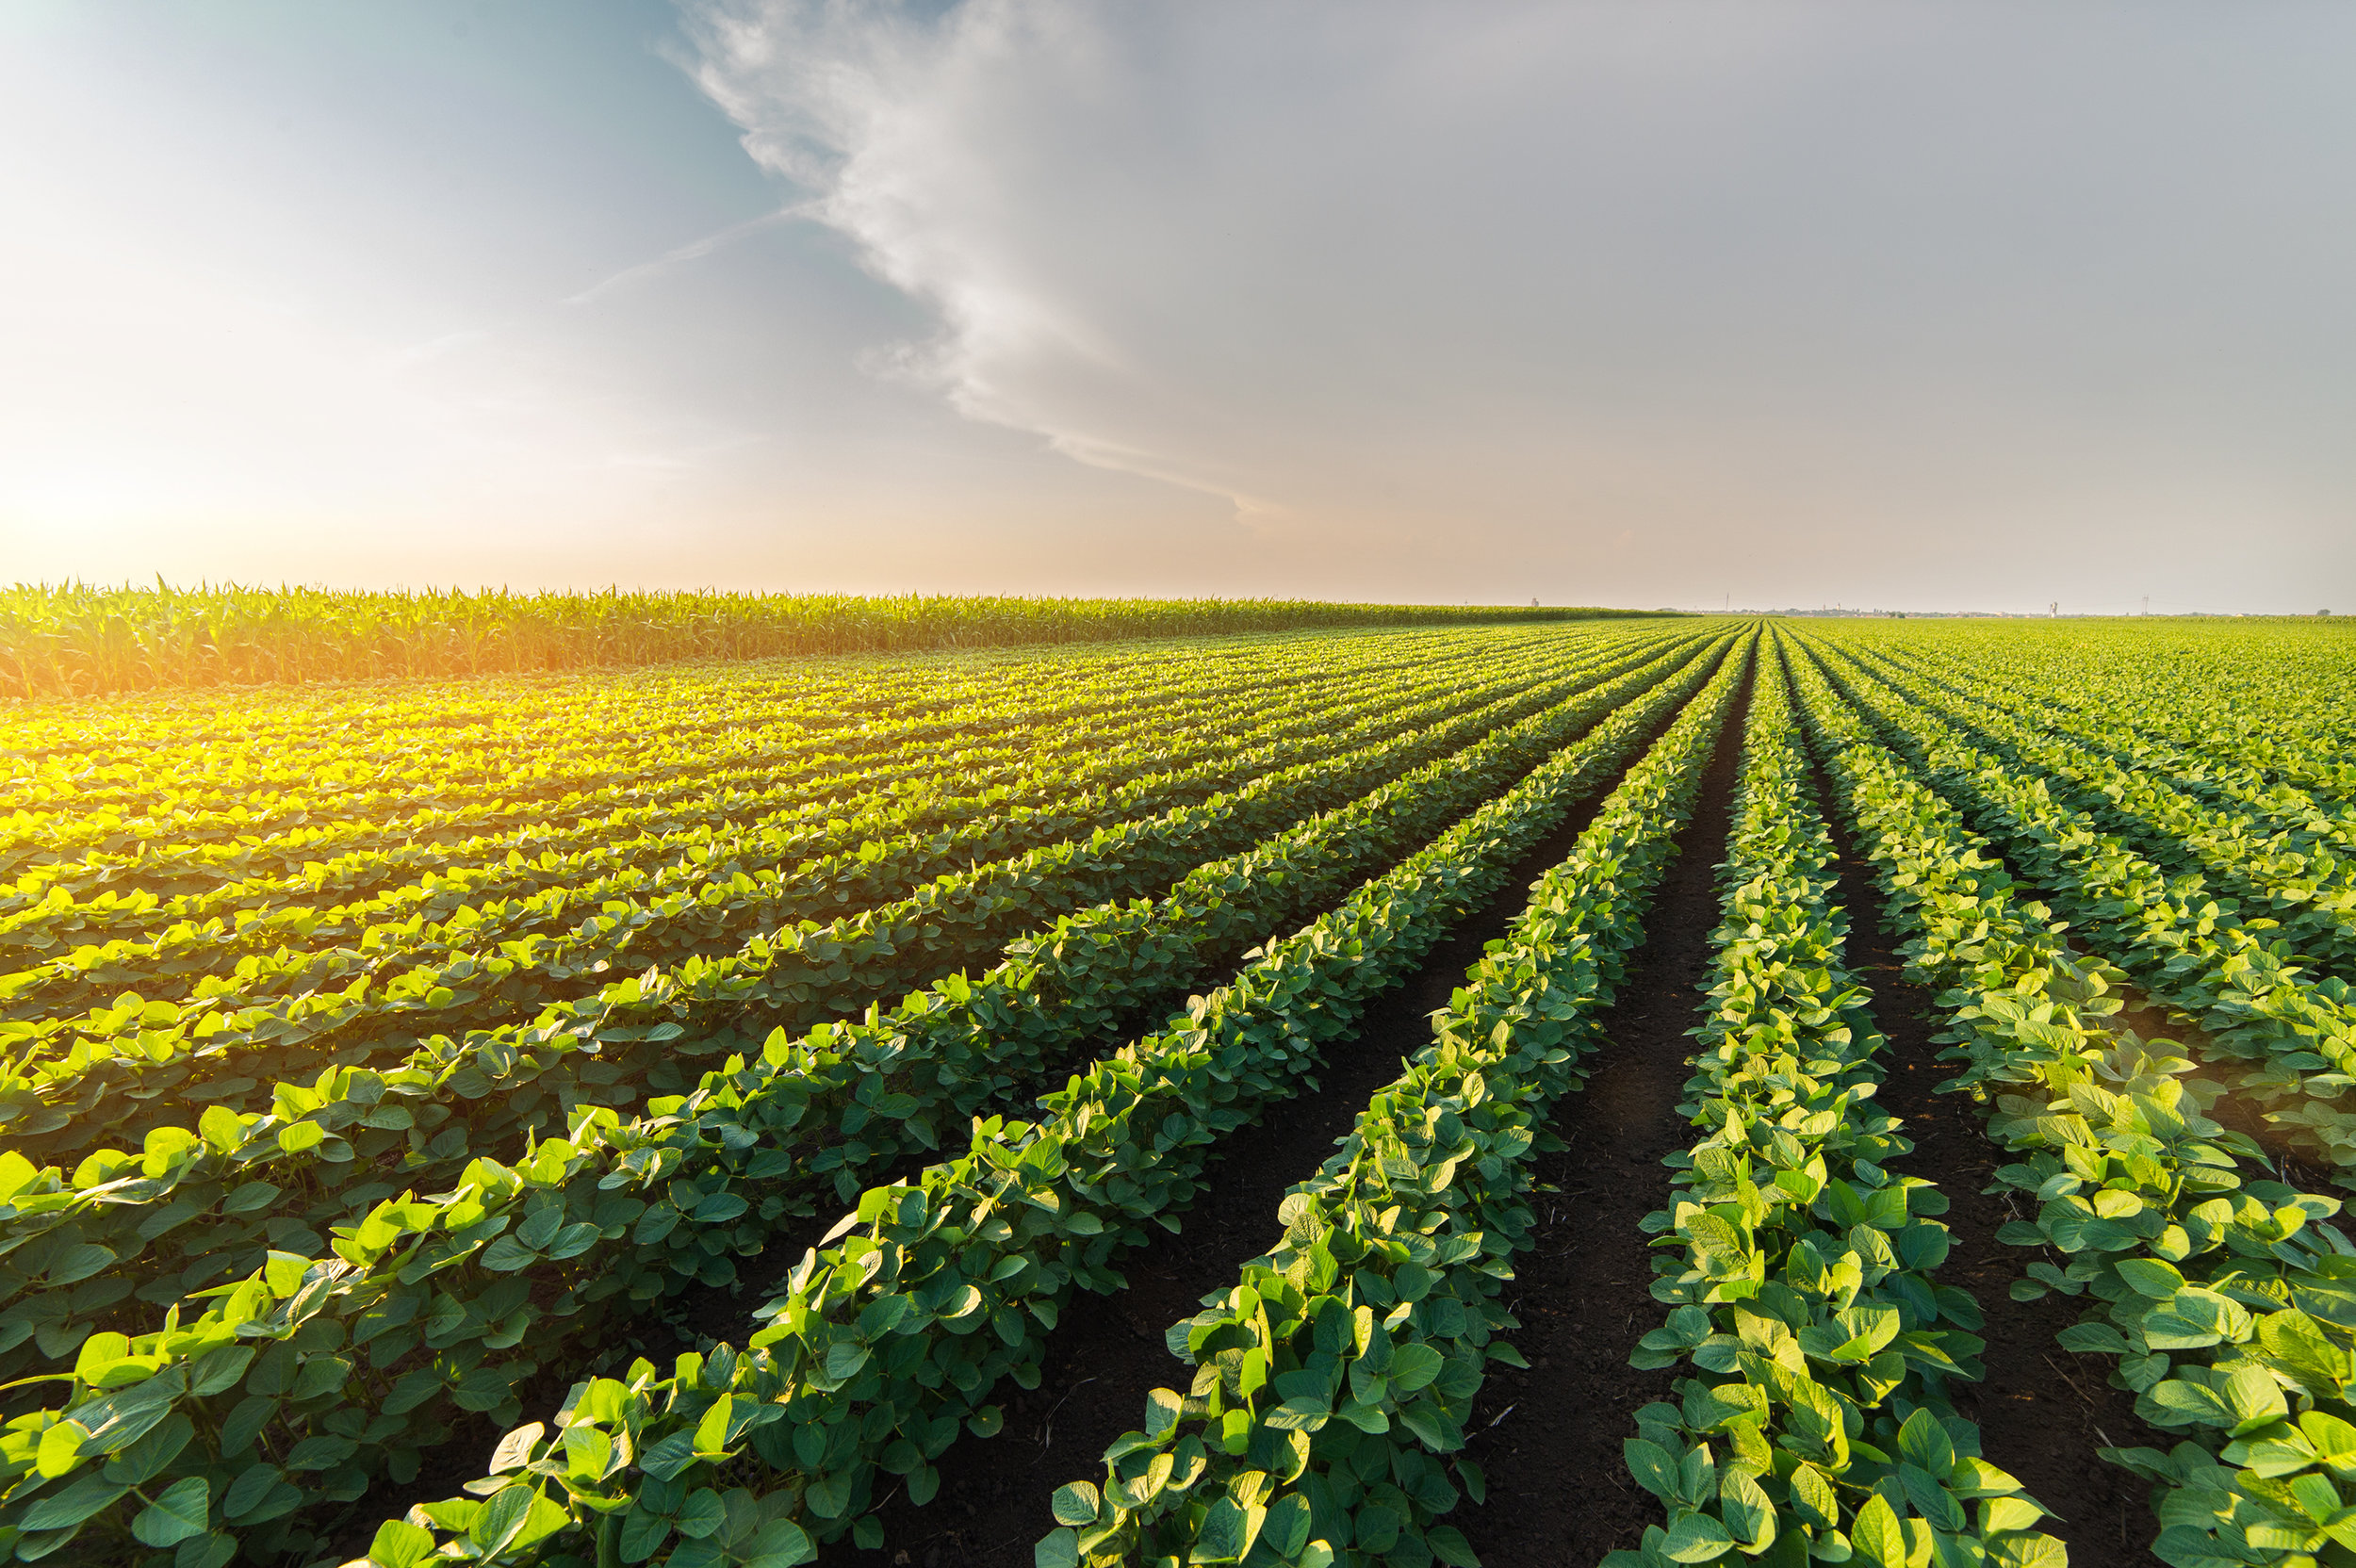 Agricultural-soy-plantation-on-sunny-day---Green-growing-soybeans-plant-against-sunlight-802349002_3004x2000.jpeg